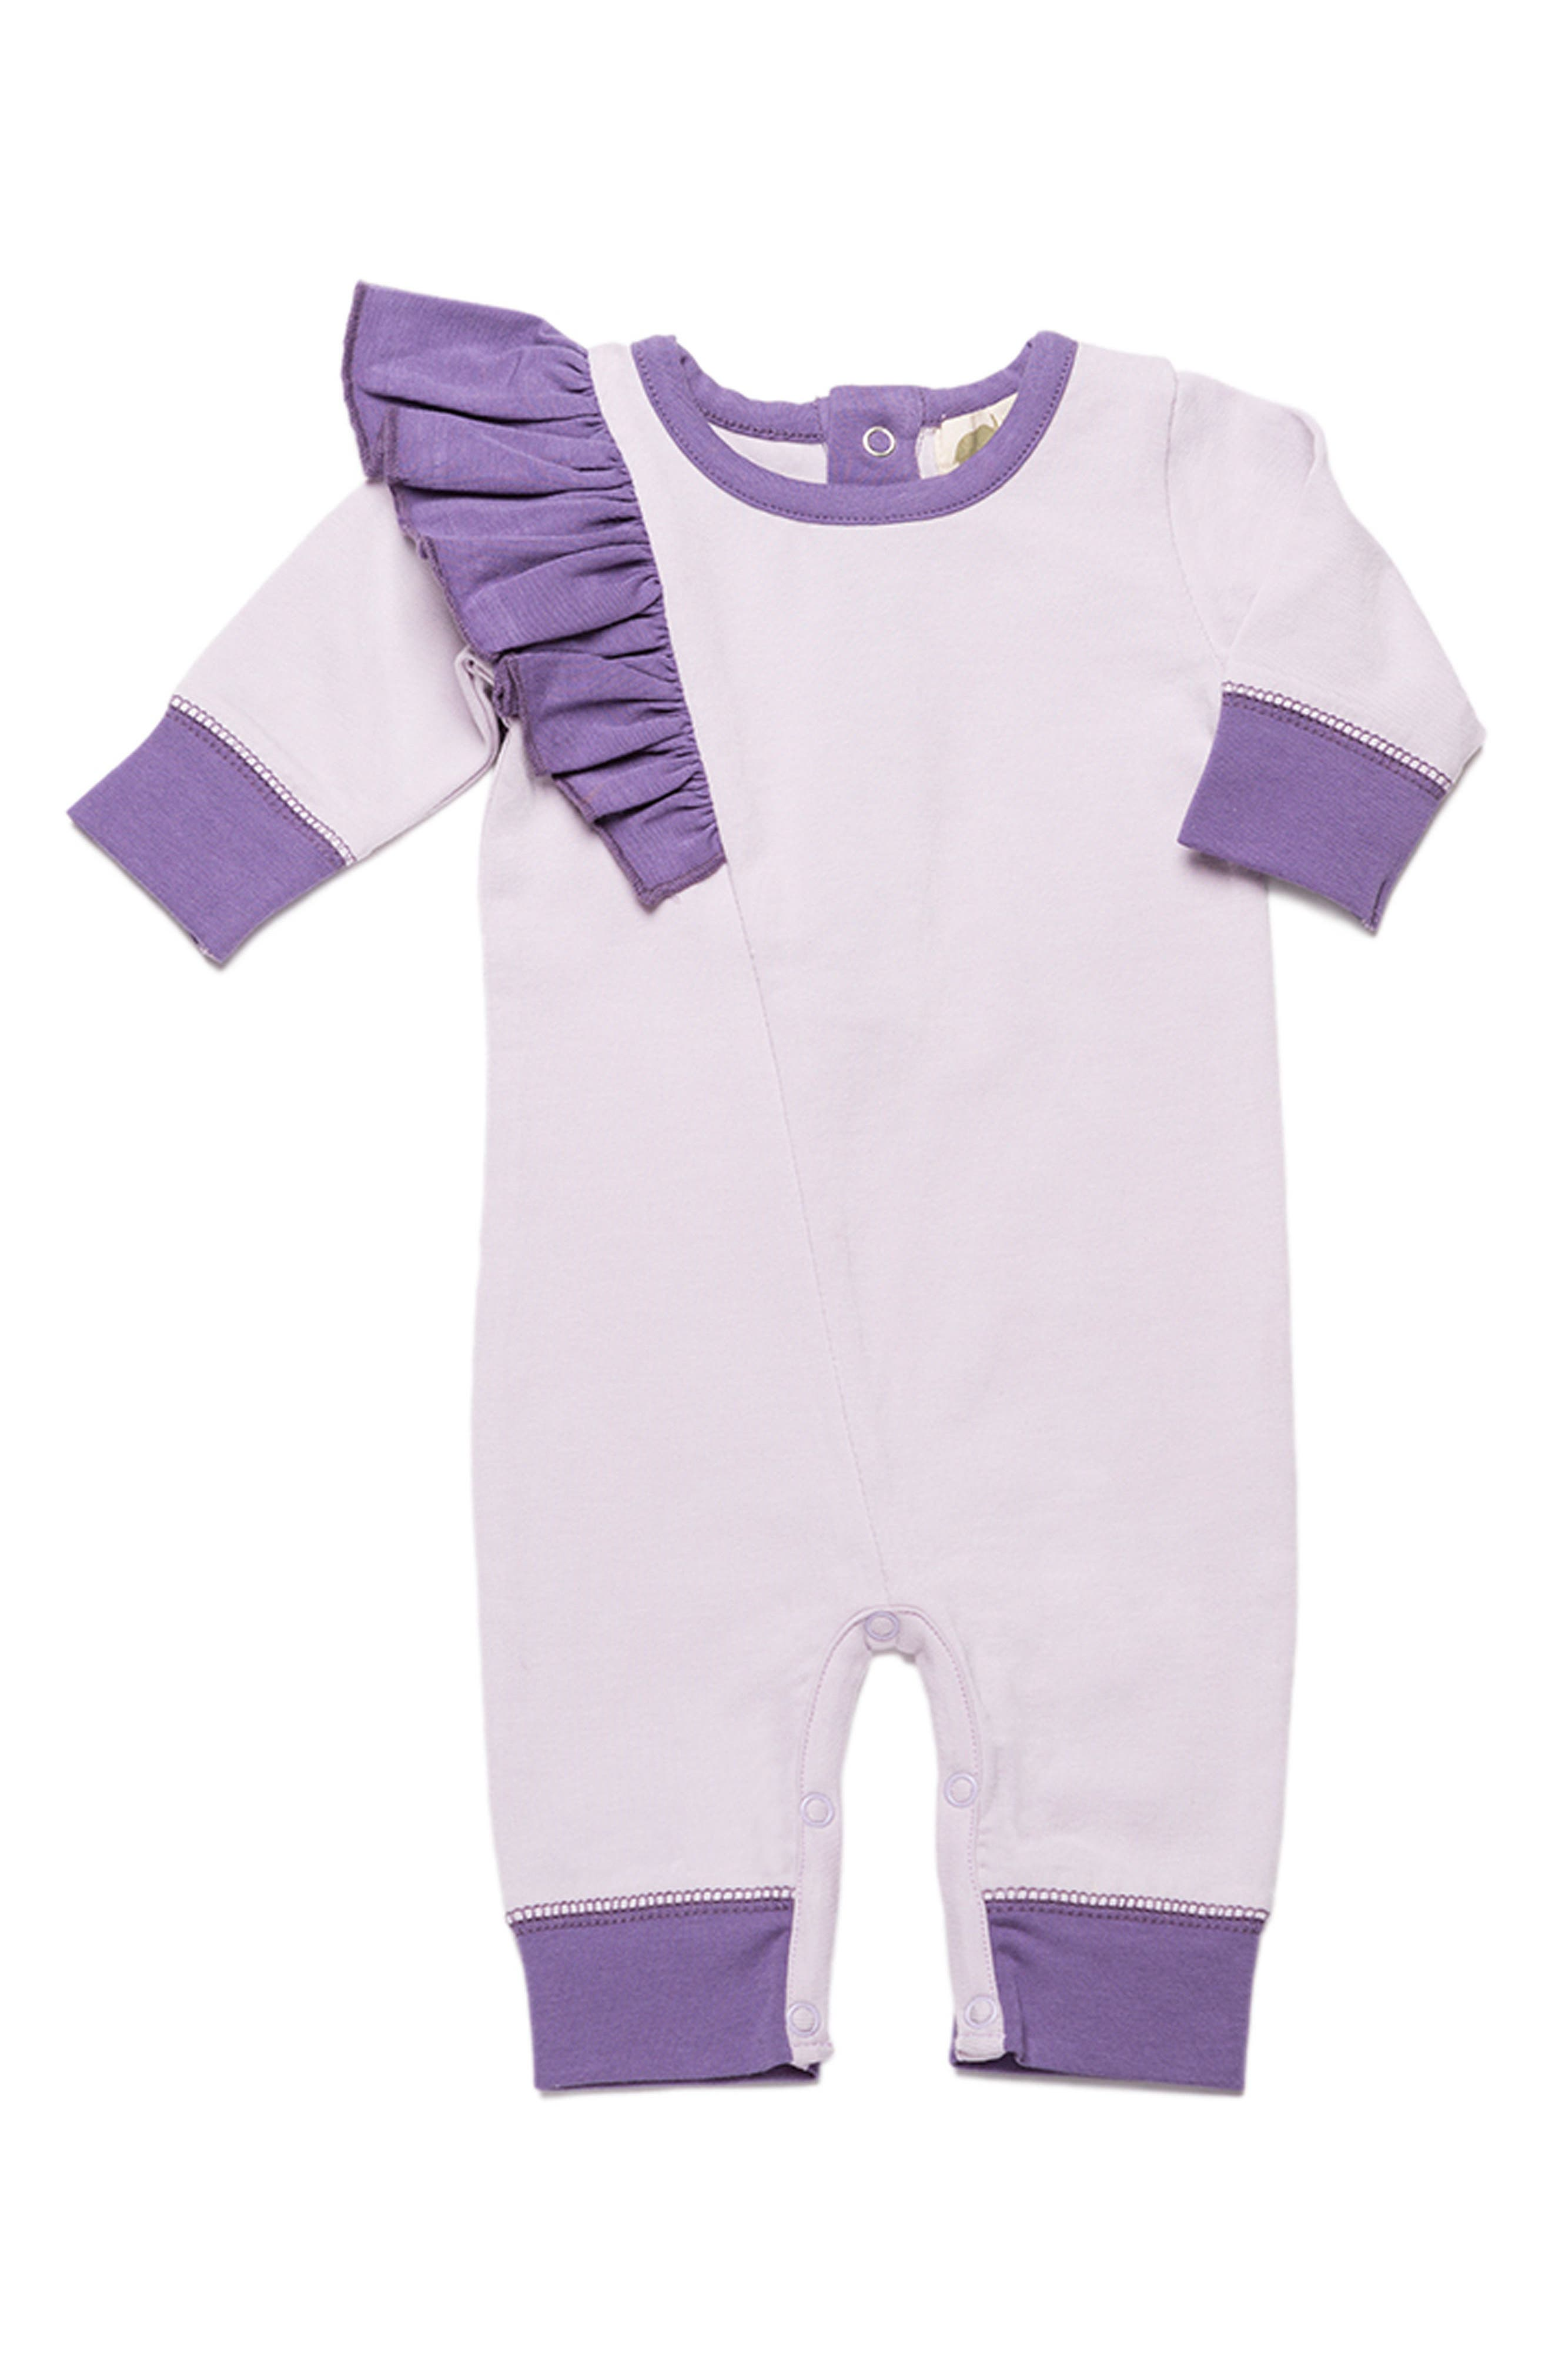 MONICA + ANDY Ruffle Organic Cotton Romper, Main, color, 500